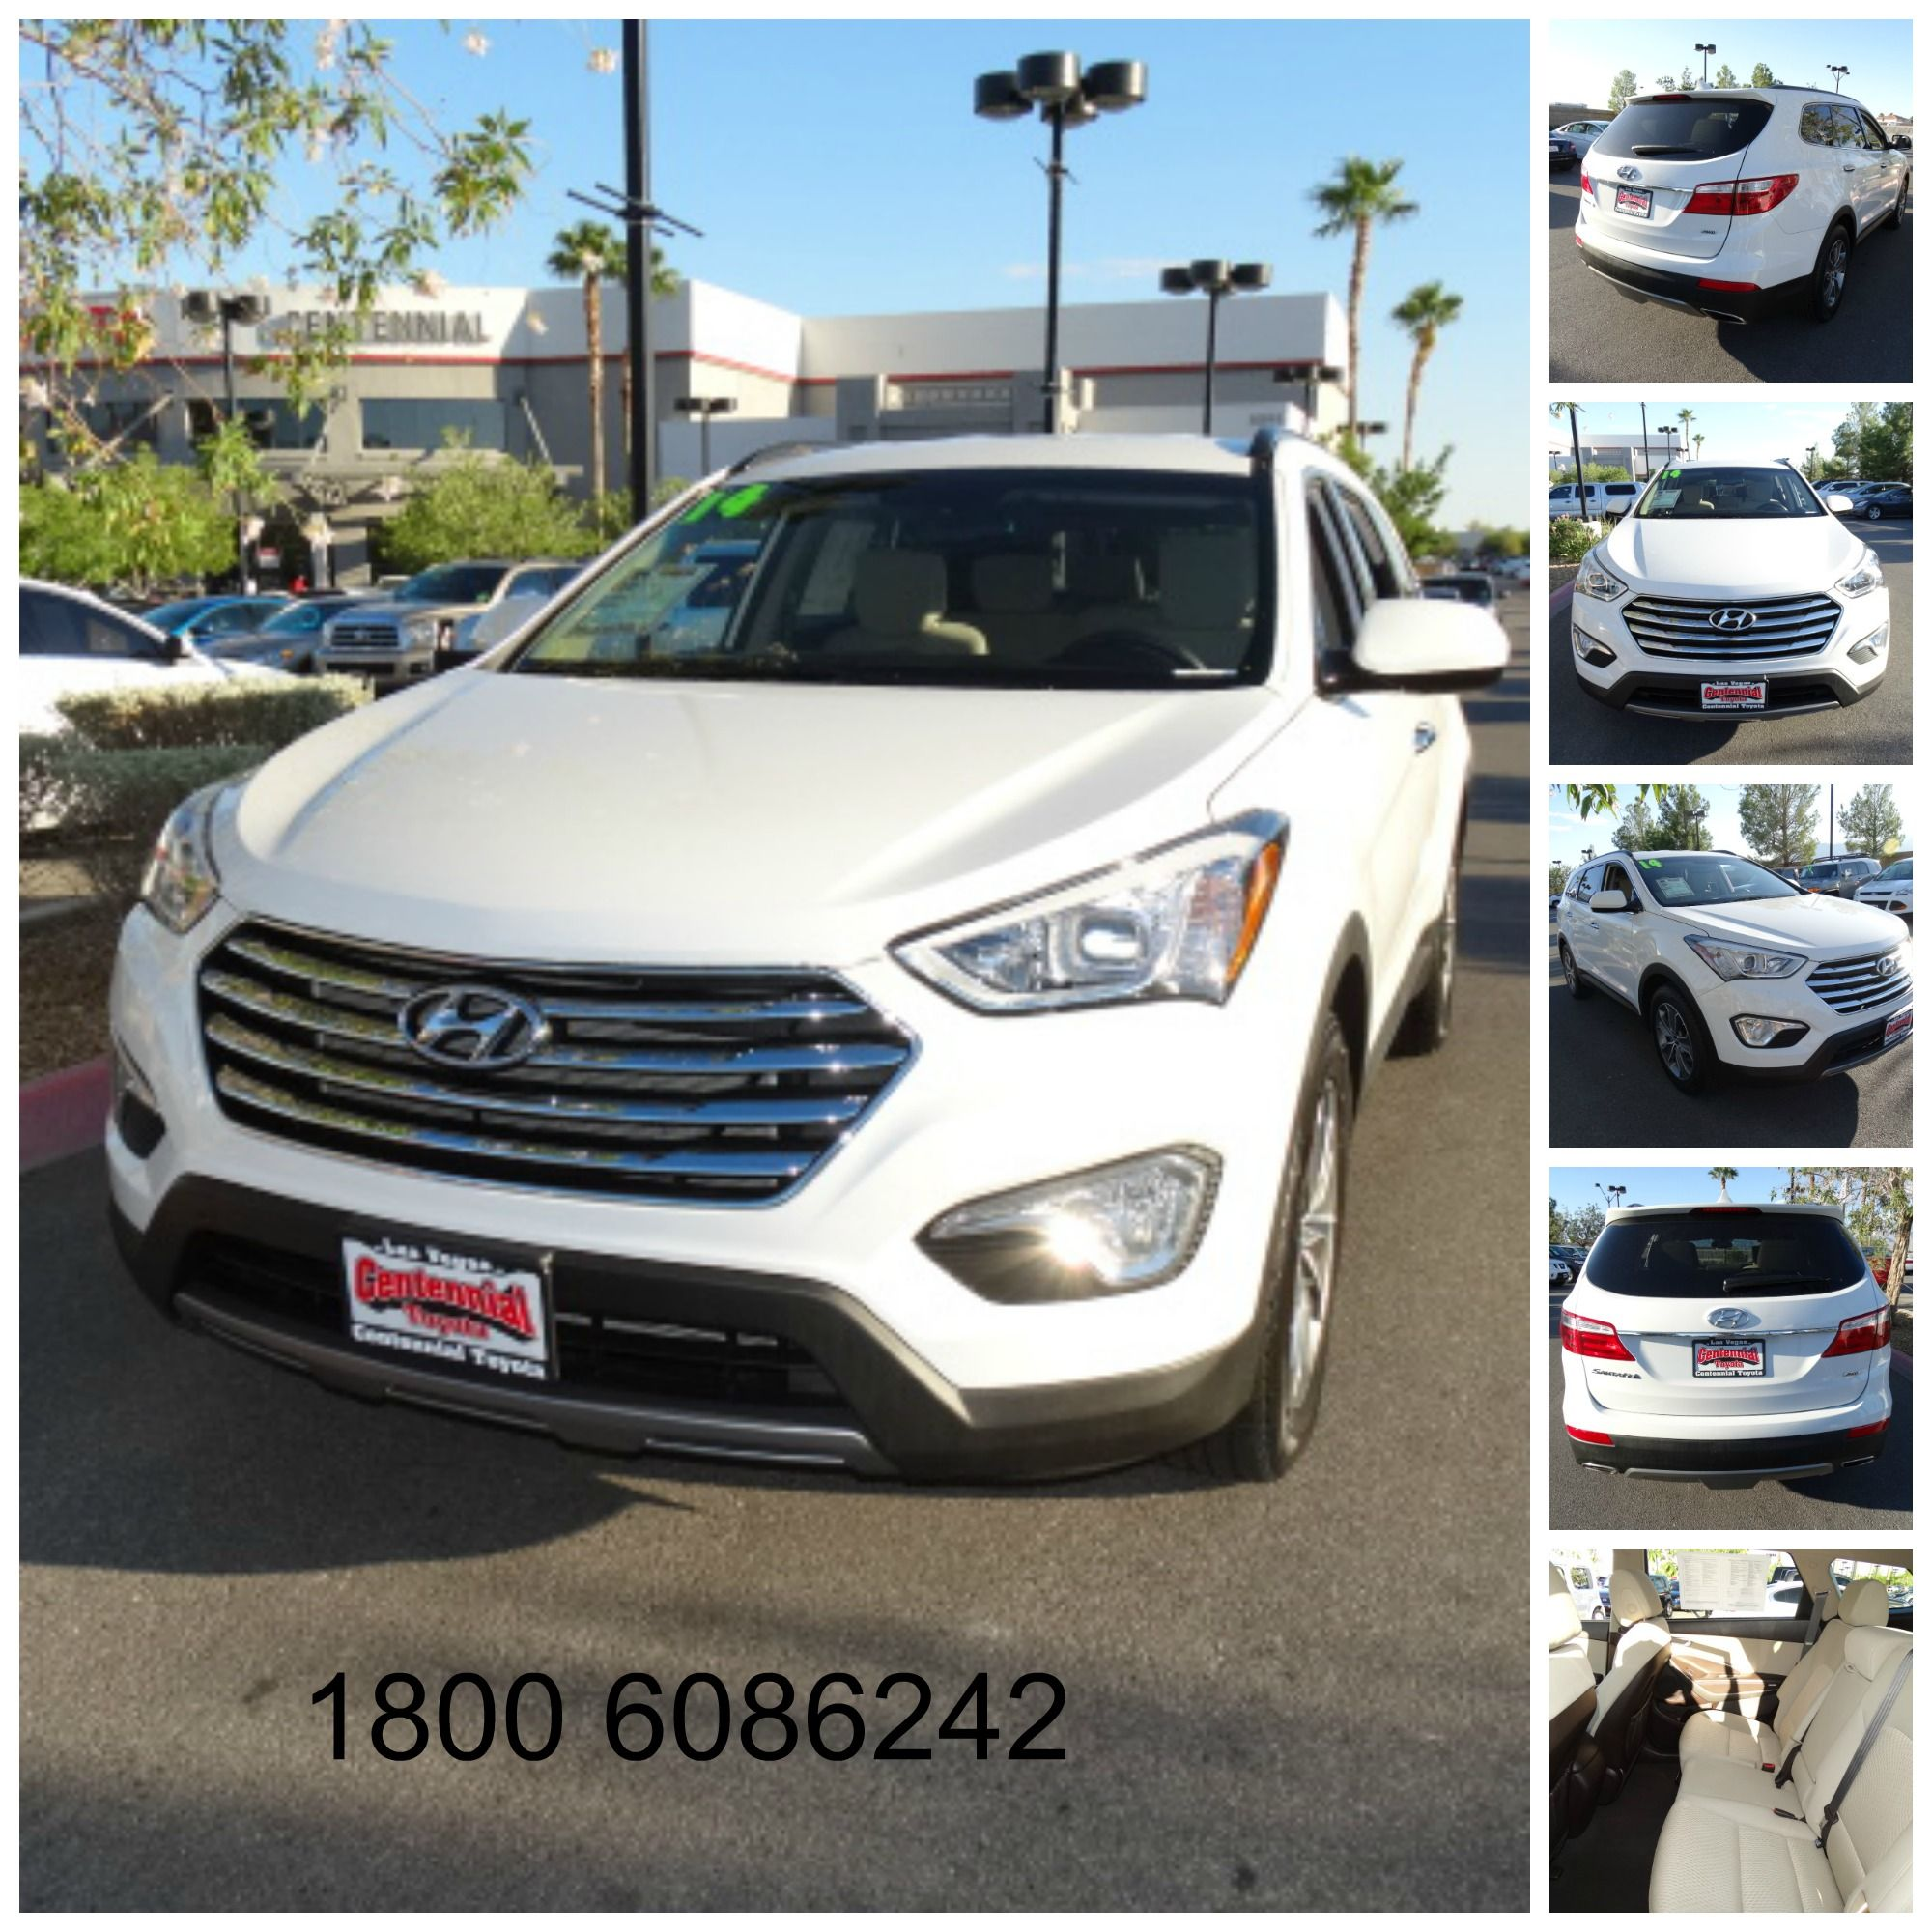 fe engine the gasoline be suv and a group only for available seater seven motor used ffun in seat five diesel hyundai will as santa model exciting launch